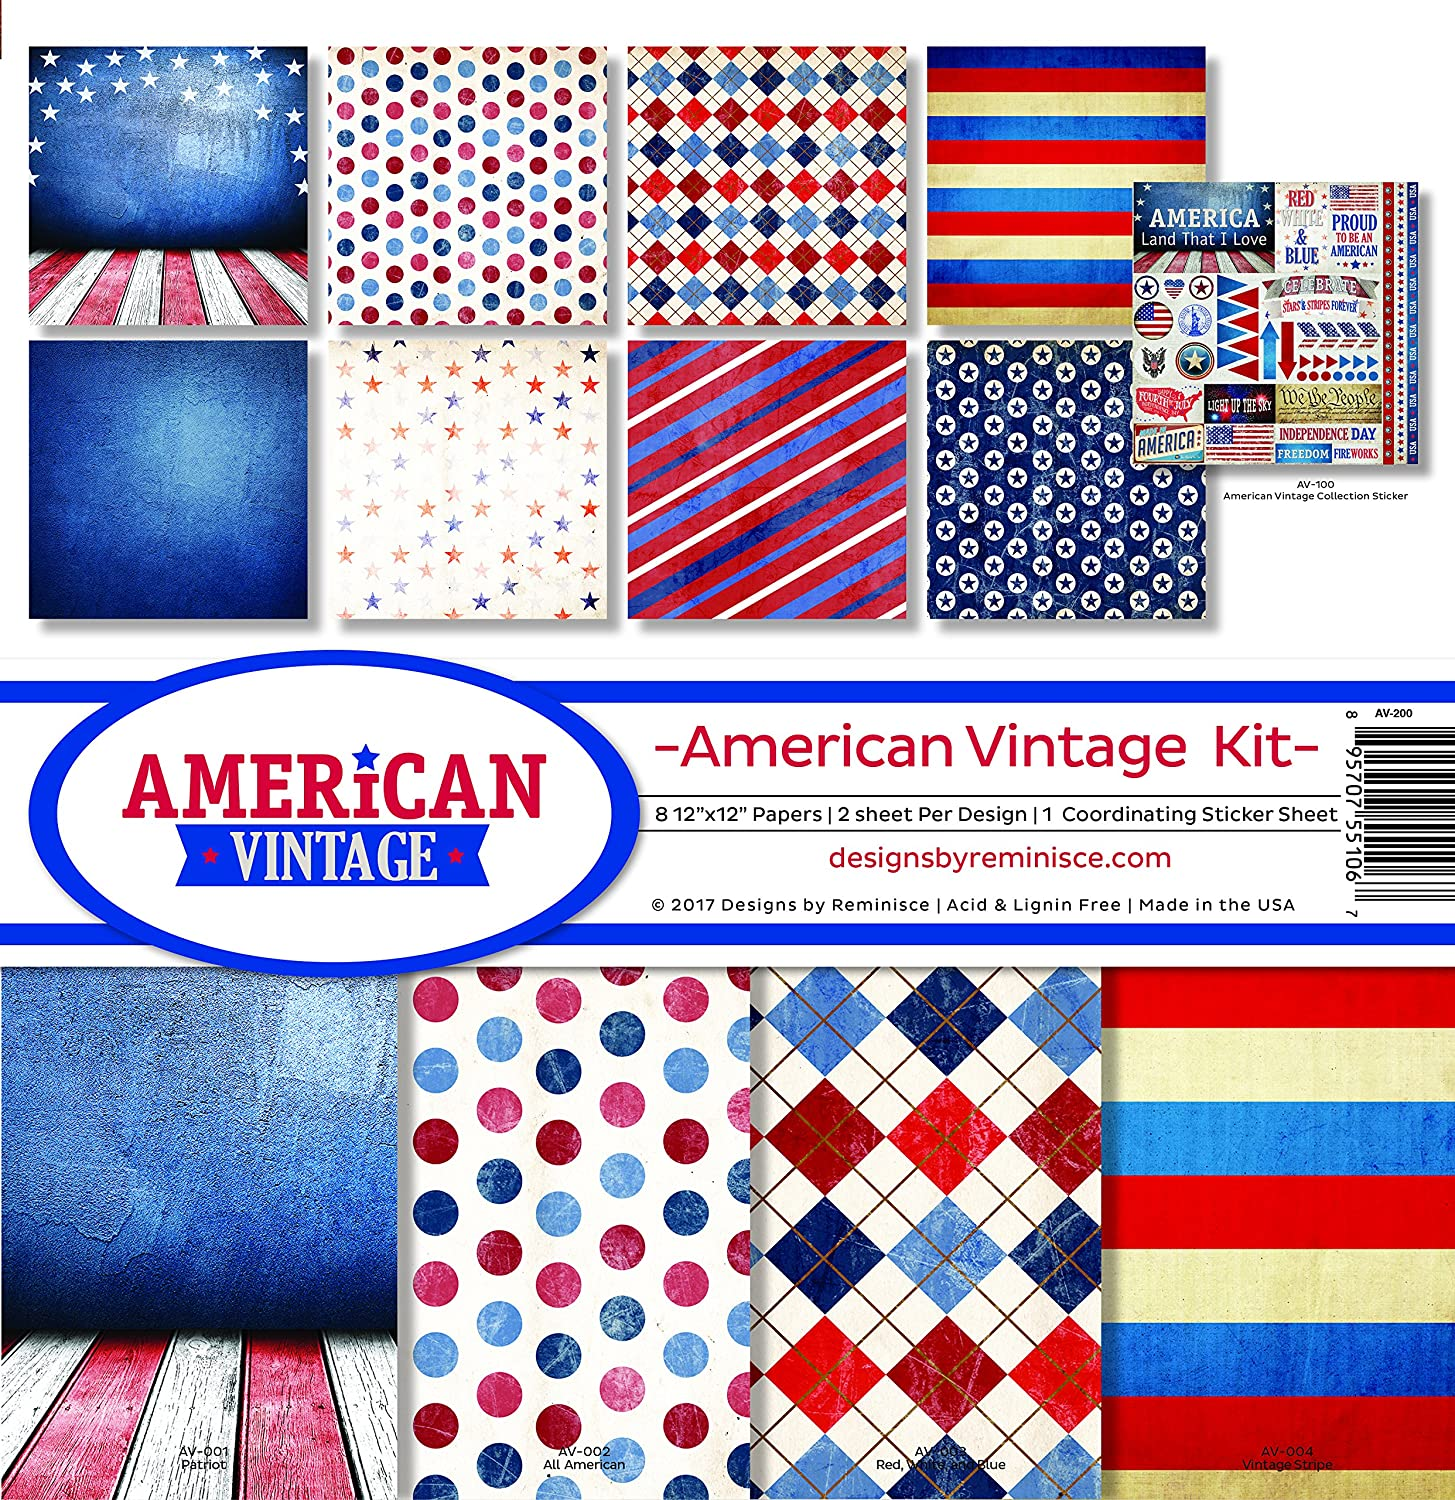 American Vintage 12x12 Scrapbook Papers /& Stickers Set by Reminisce